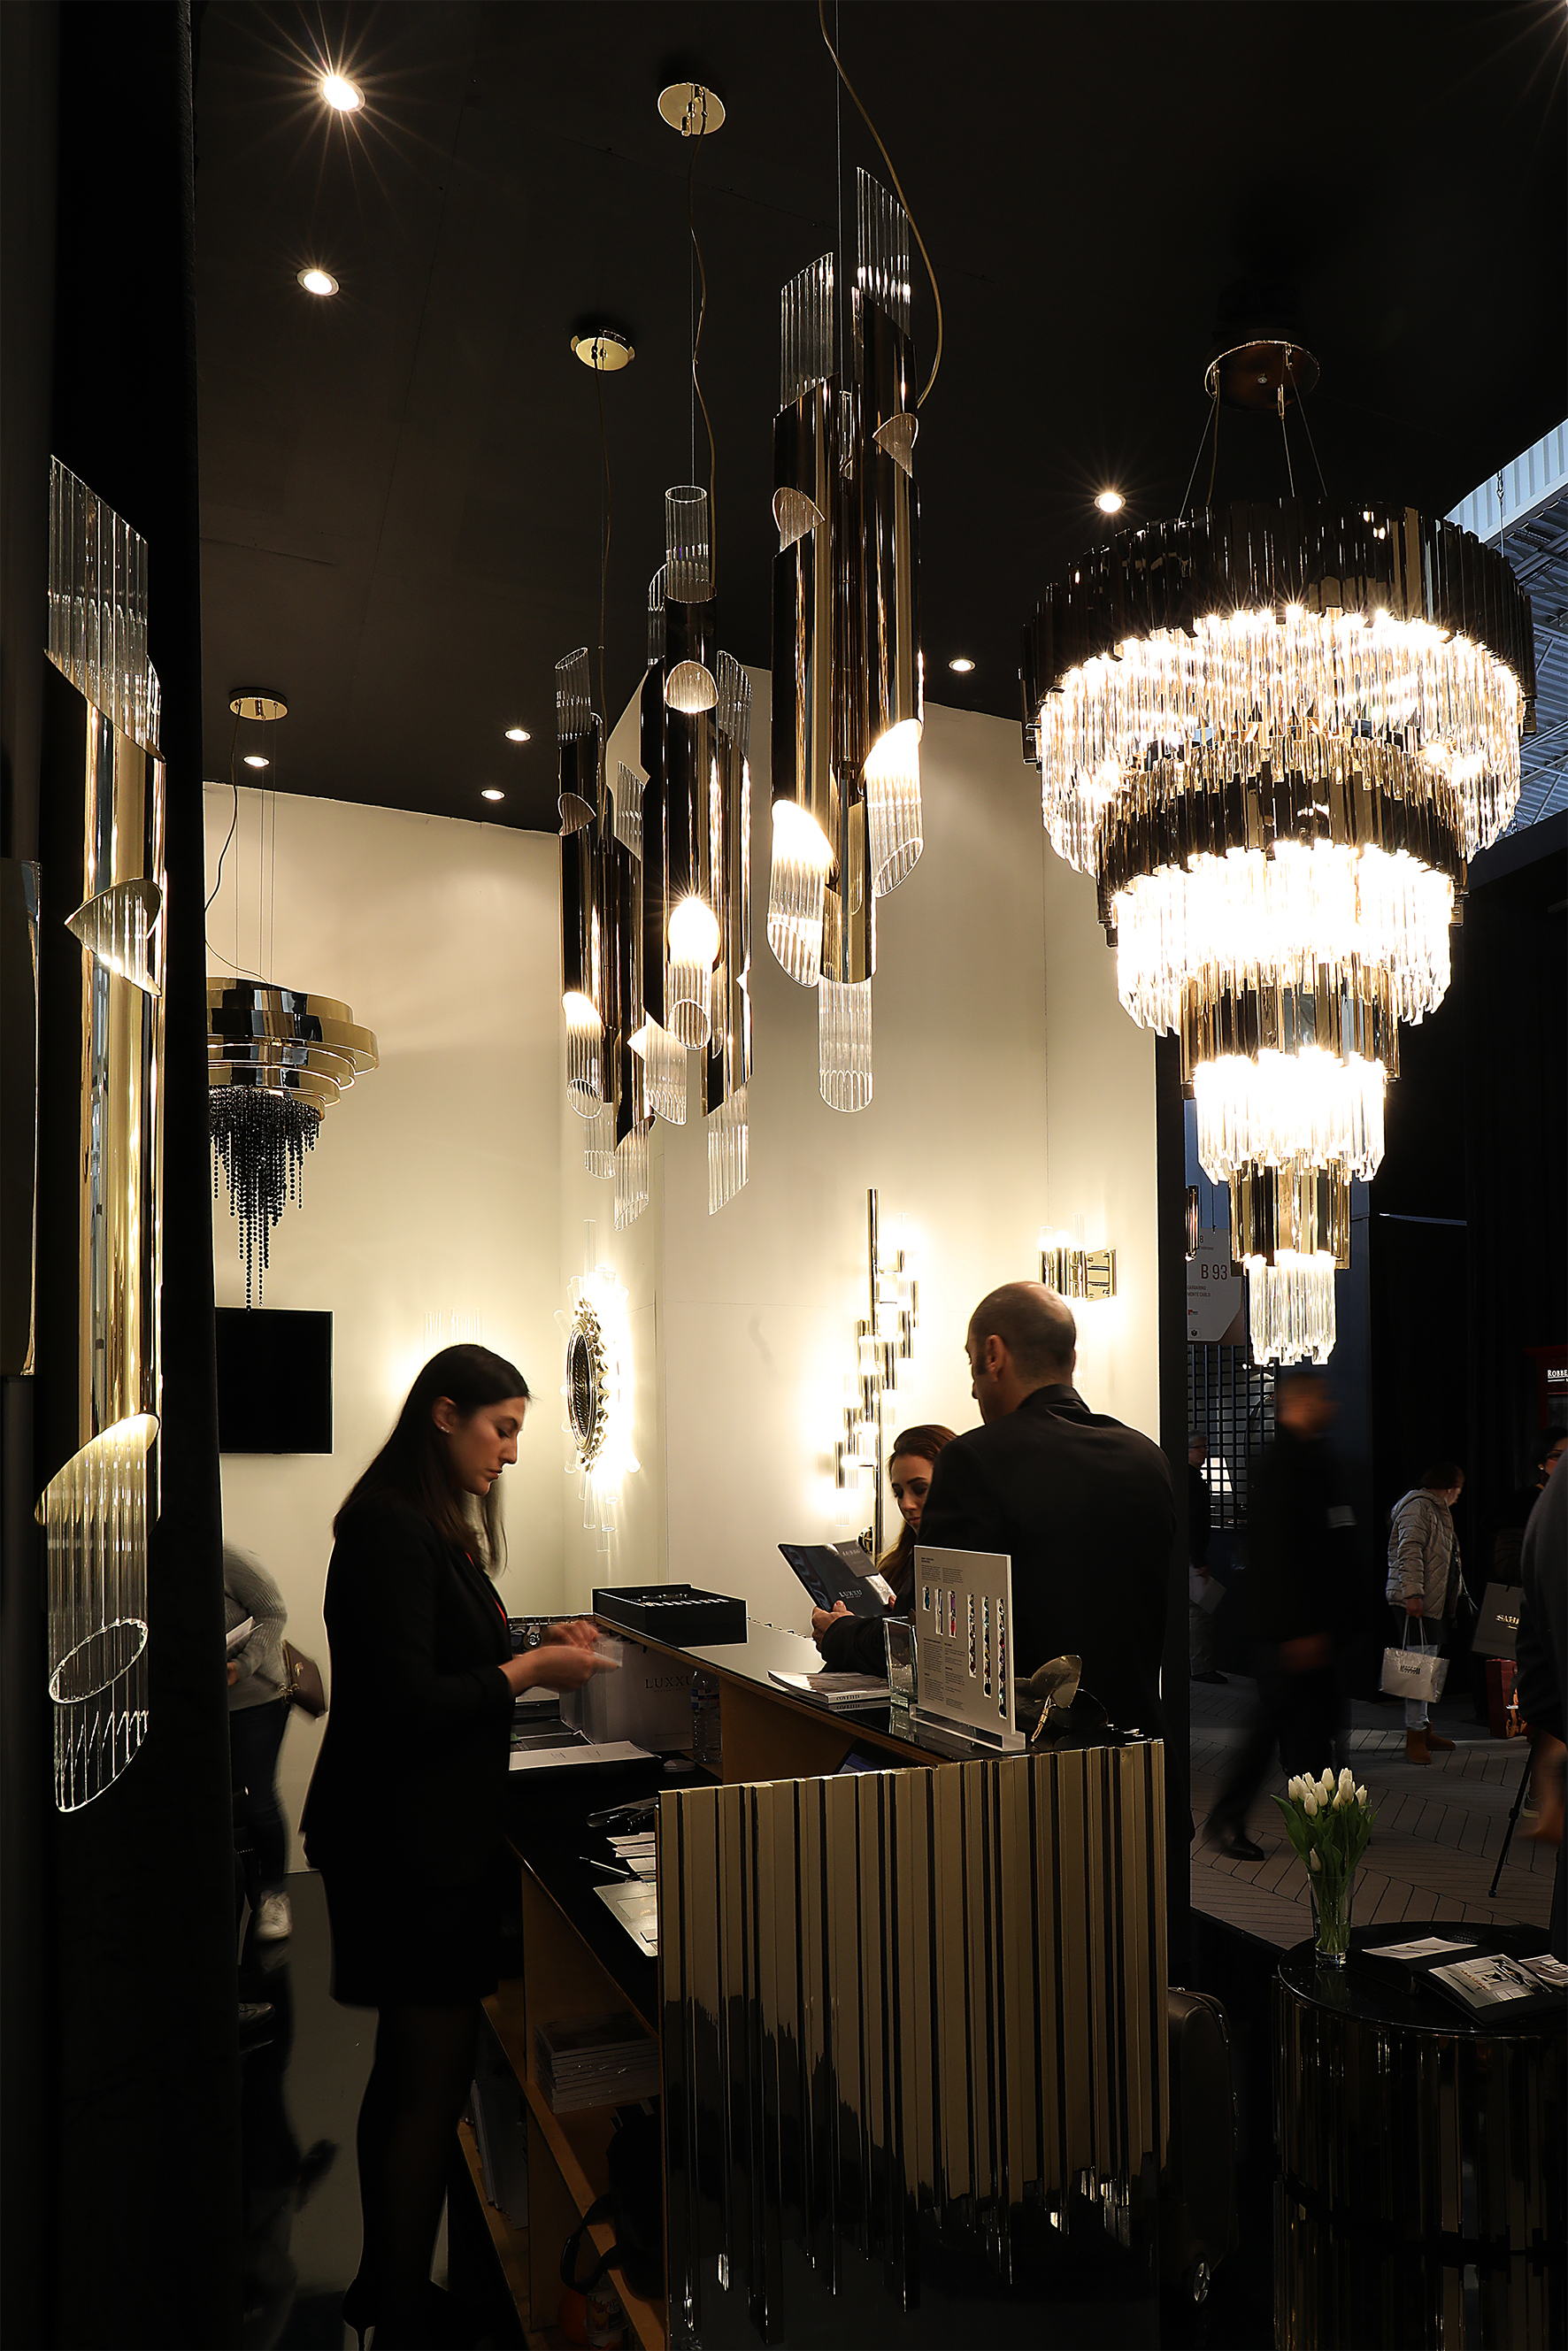 Extravagant Lighting Collection by Luxxu at Maison et Objet Paris 2017 maison et objet paris 2017 Extravagant Lighting Collection by Luxxu at Maison et Objet Paris 2017 empire chandelier luxxu maison objet paris 2017